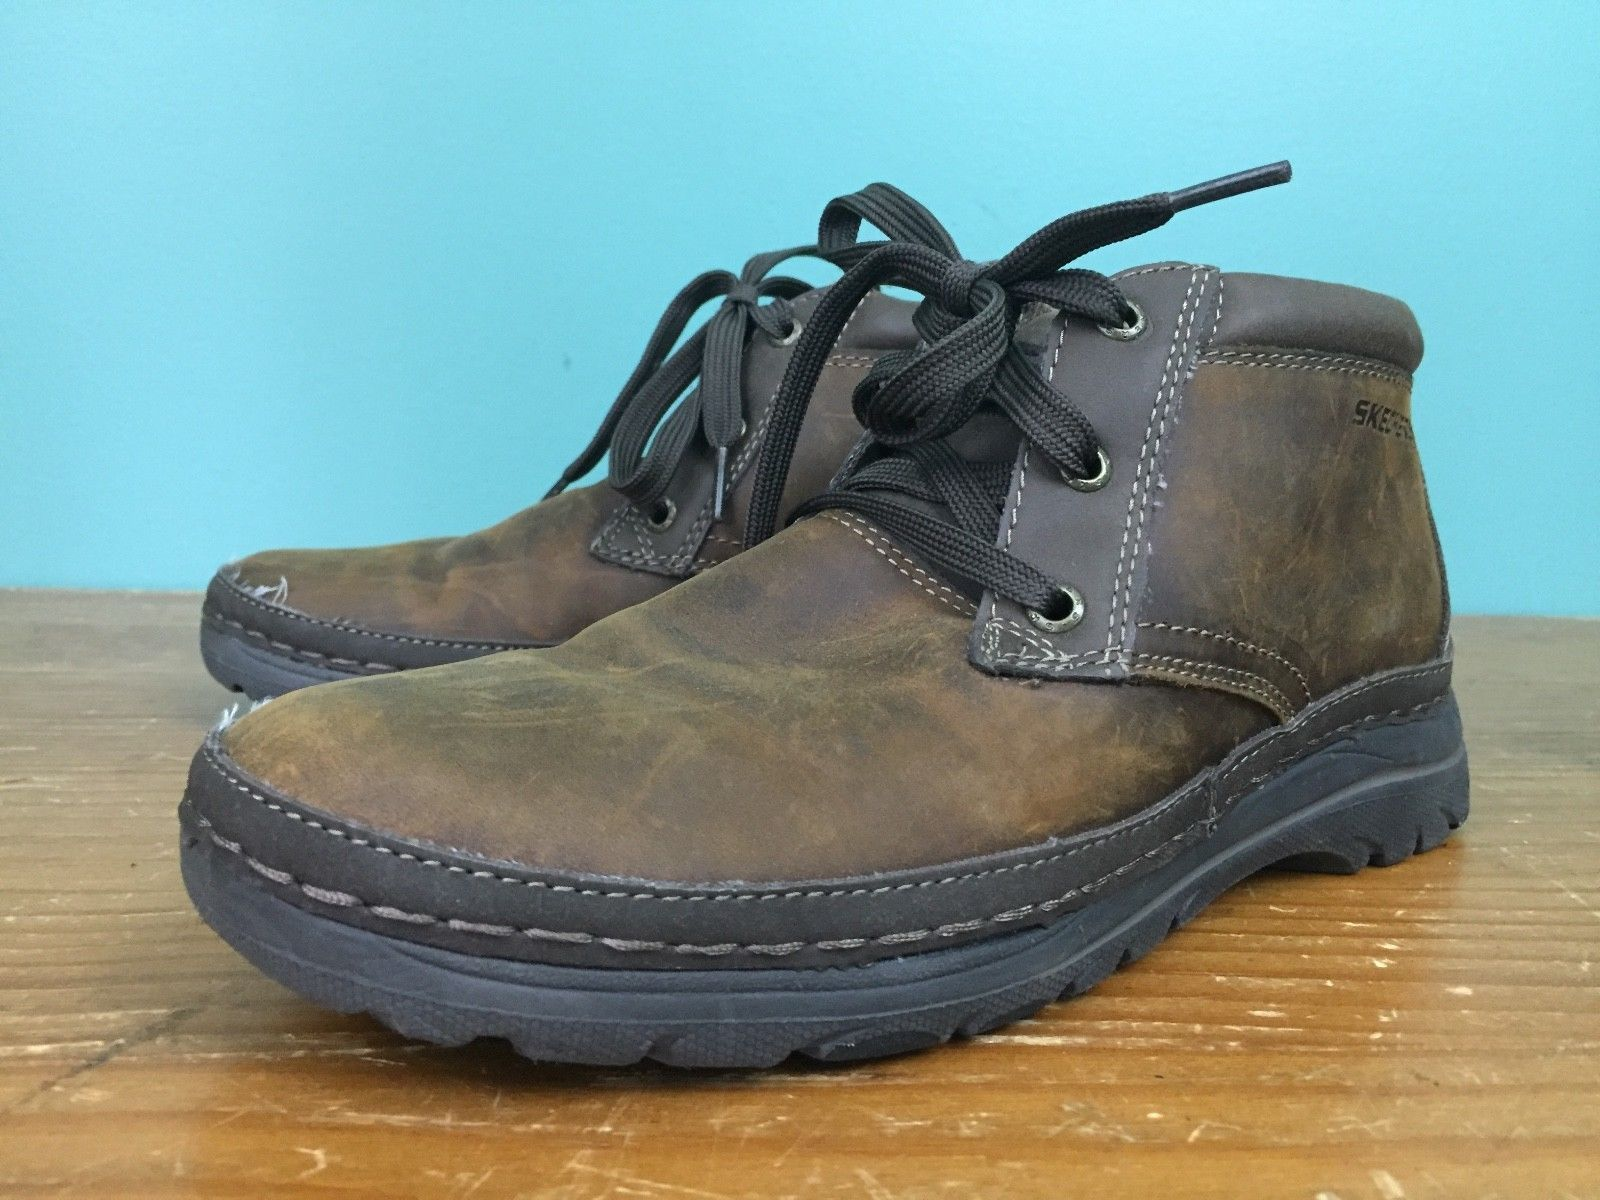 3445e4c43d Skechers USA Men's Selected Renton Chukka Boots - Size 8 - Brown Leather,  ...